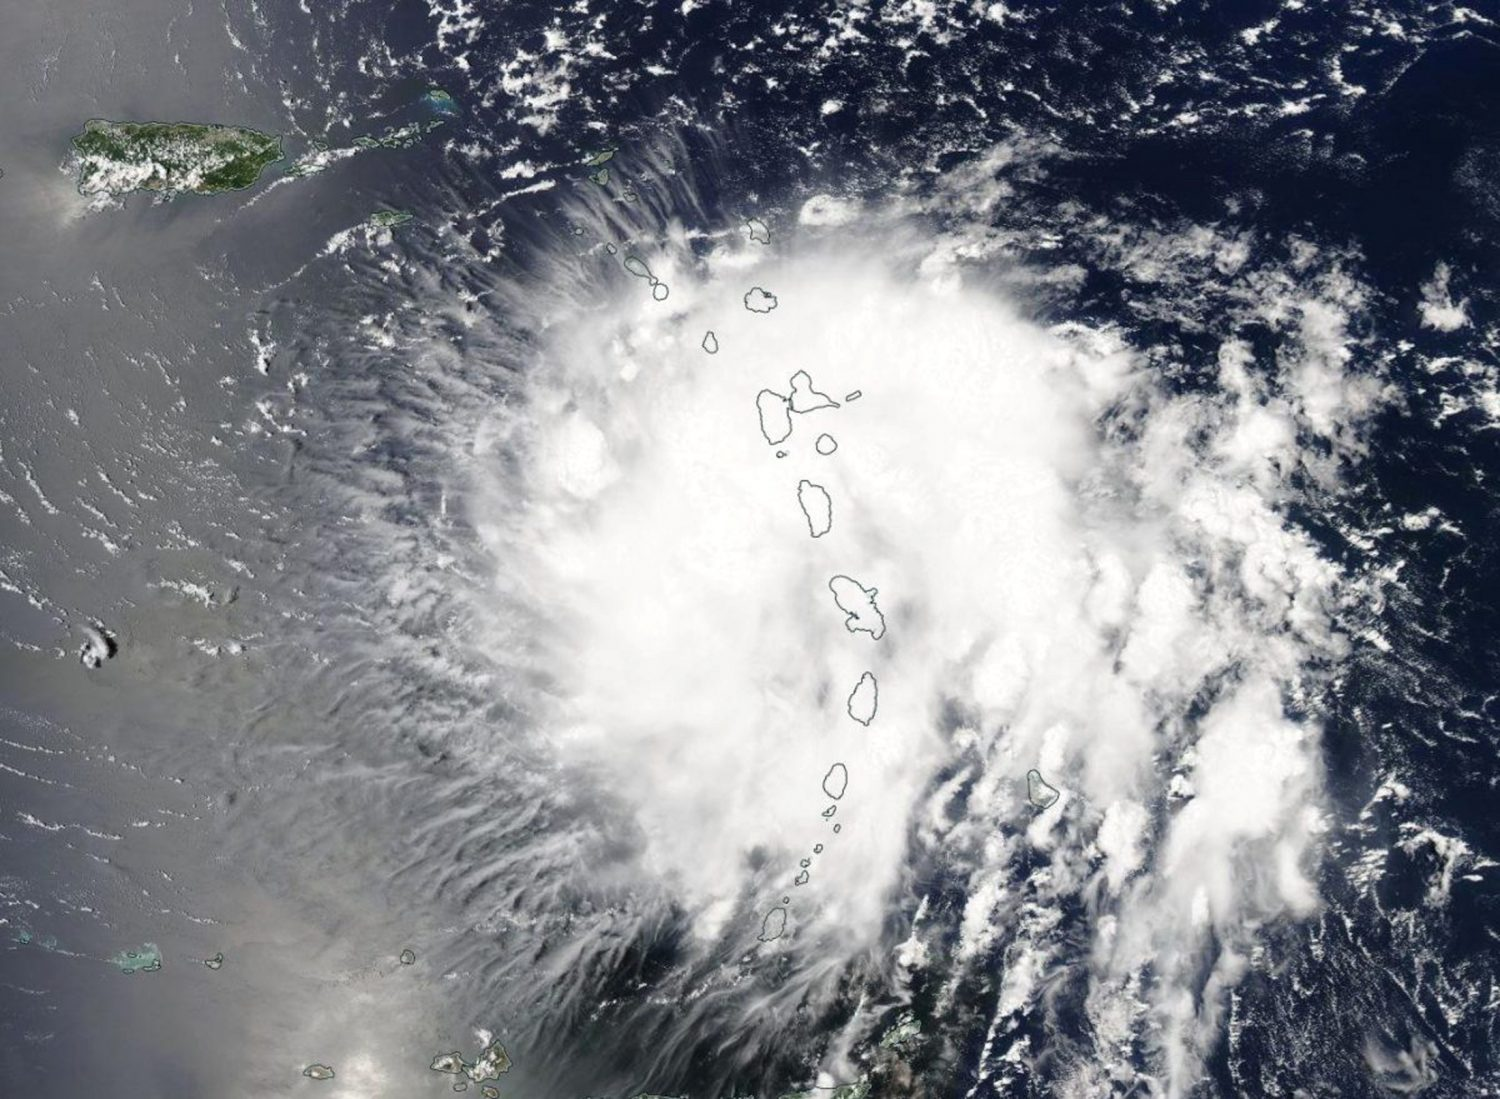 Tropical Storm Dorian is shown in this photo taken by NASA's Aqua satellite MODIS instrument as it moved over the Leeward Islands, as it continues its track into the Eastern Caribbean Sea, August 27, 2019. NASA Worldview, Earth Observing System Data and Information System (EOSDIS)/Handout via REUTERS